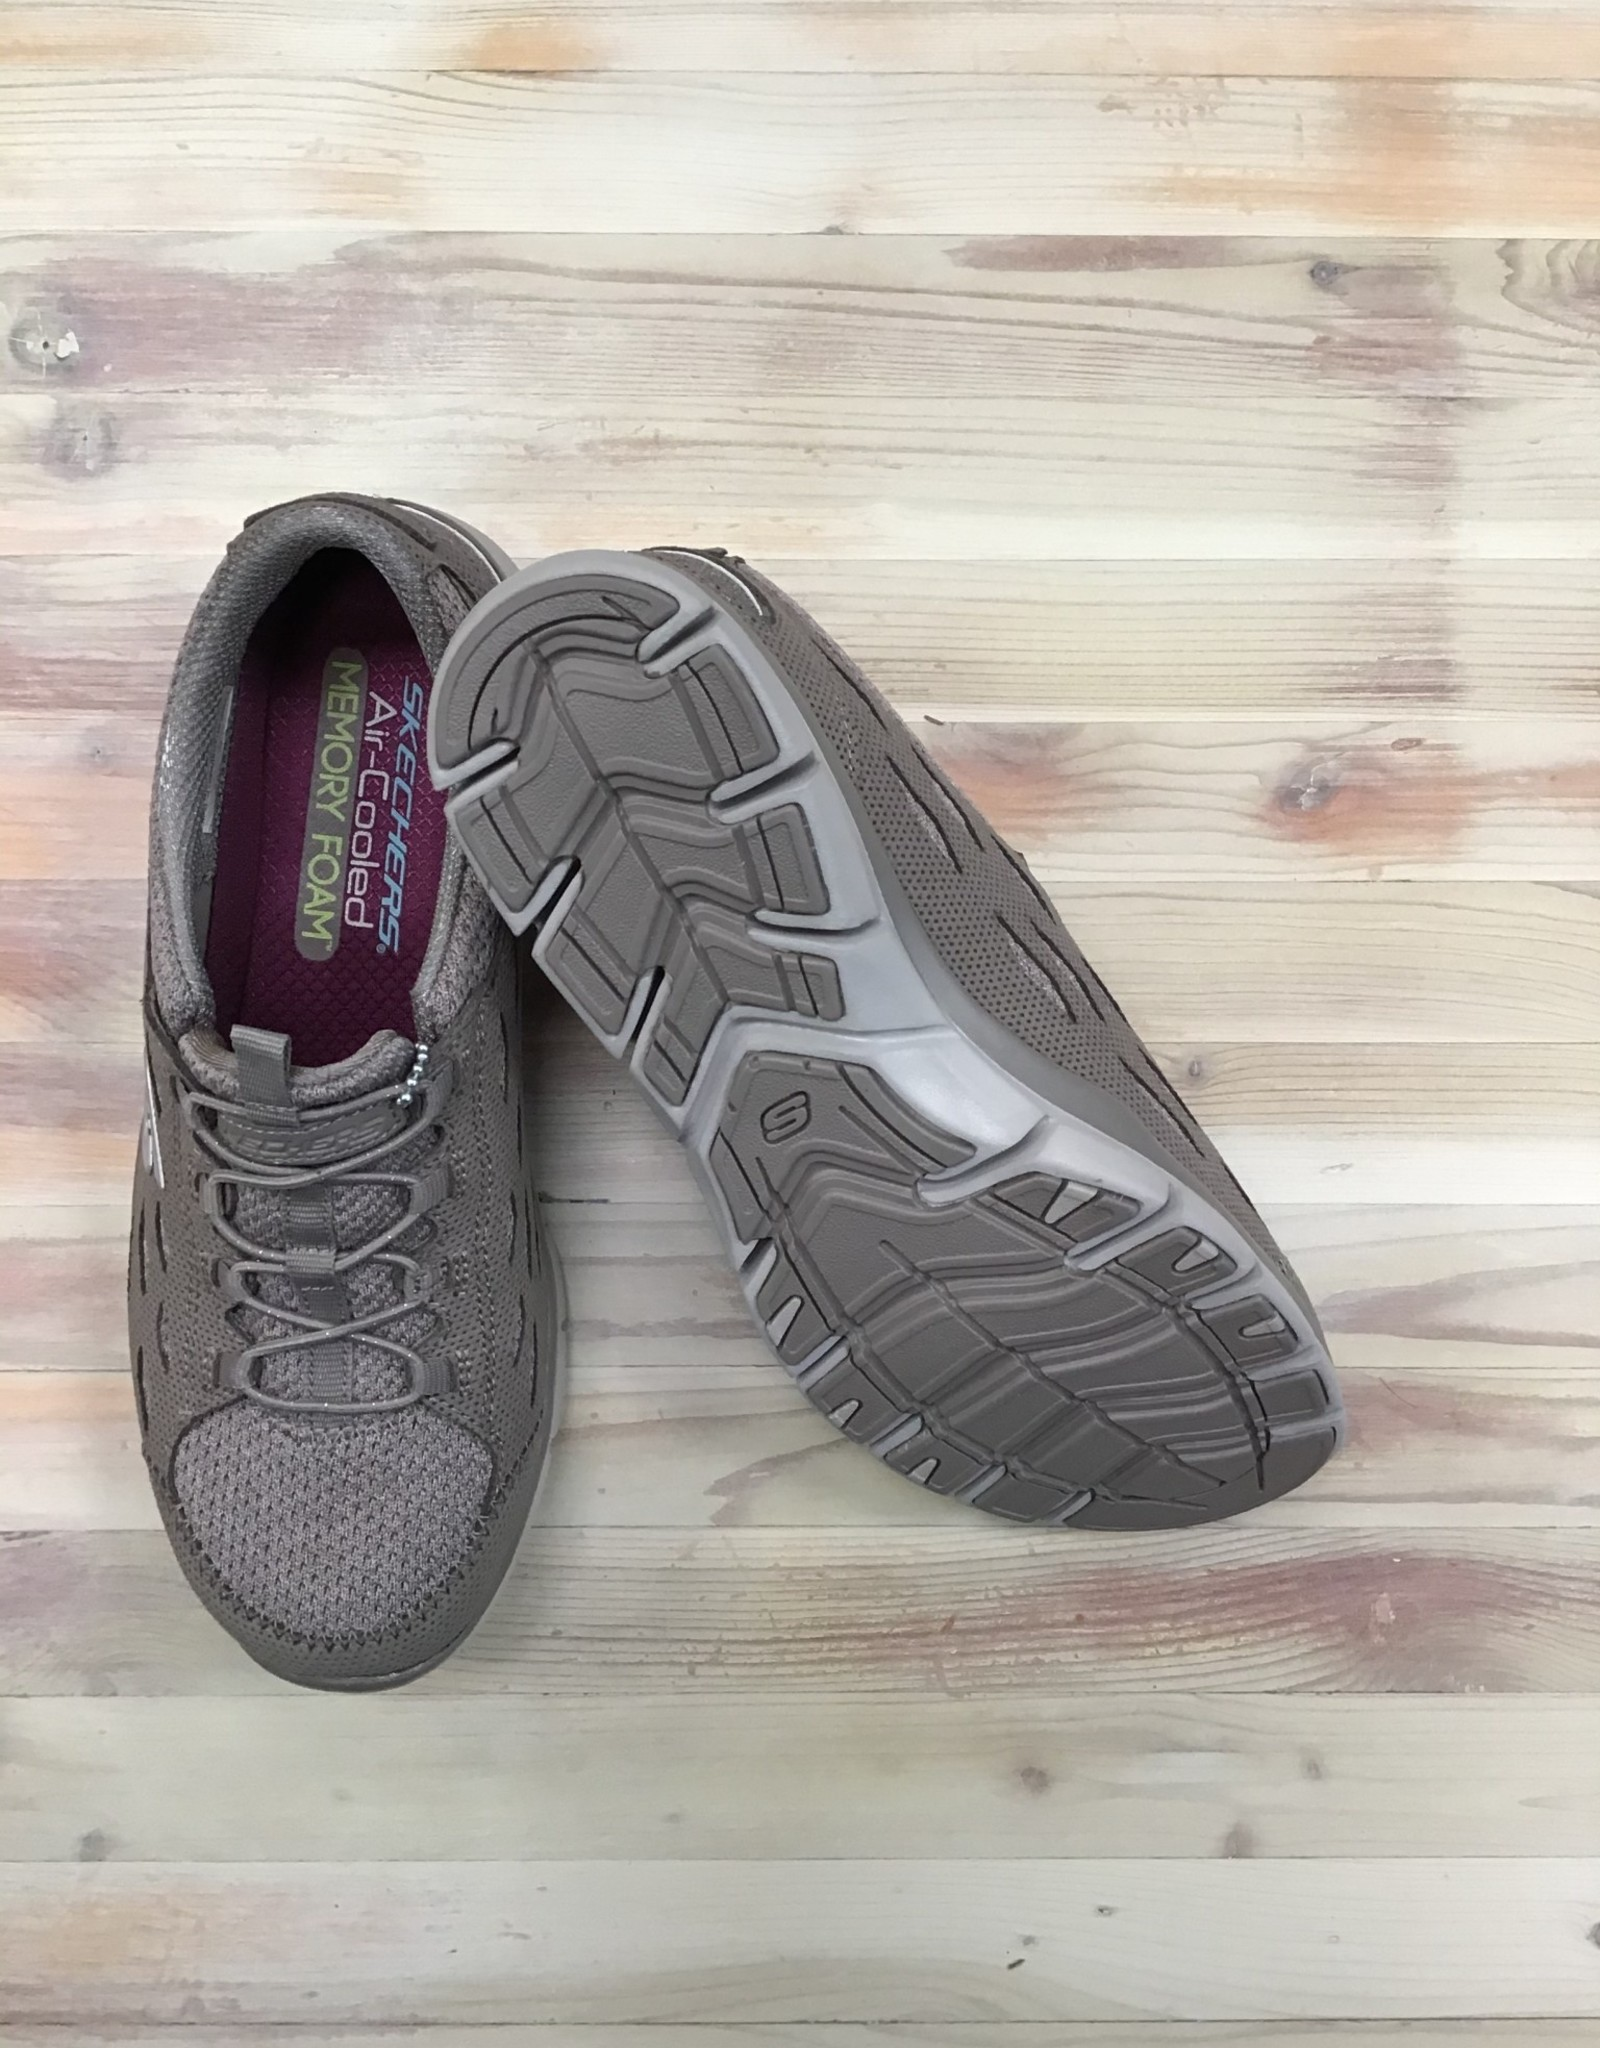 Skechers Skechers Gratis Cozy N' Carefree Ladies'